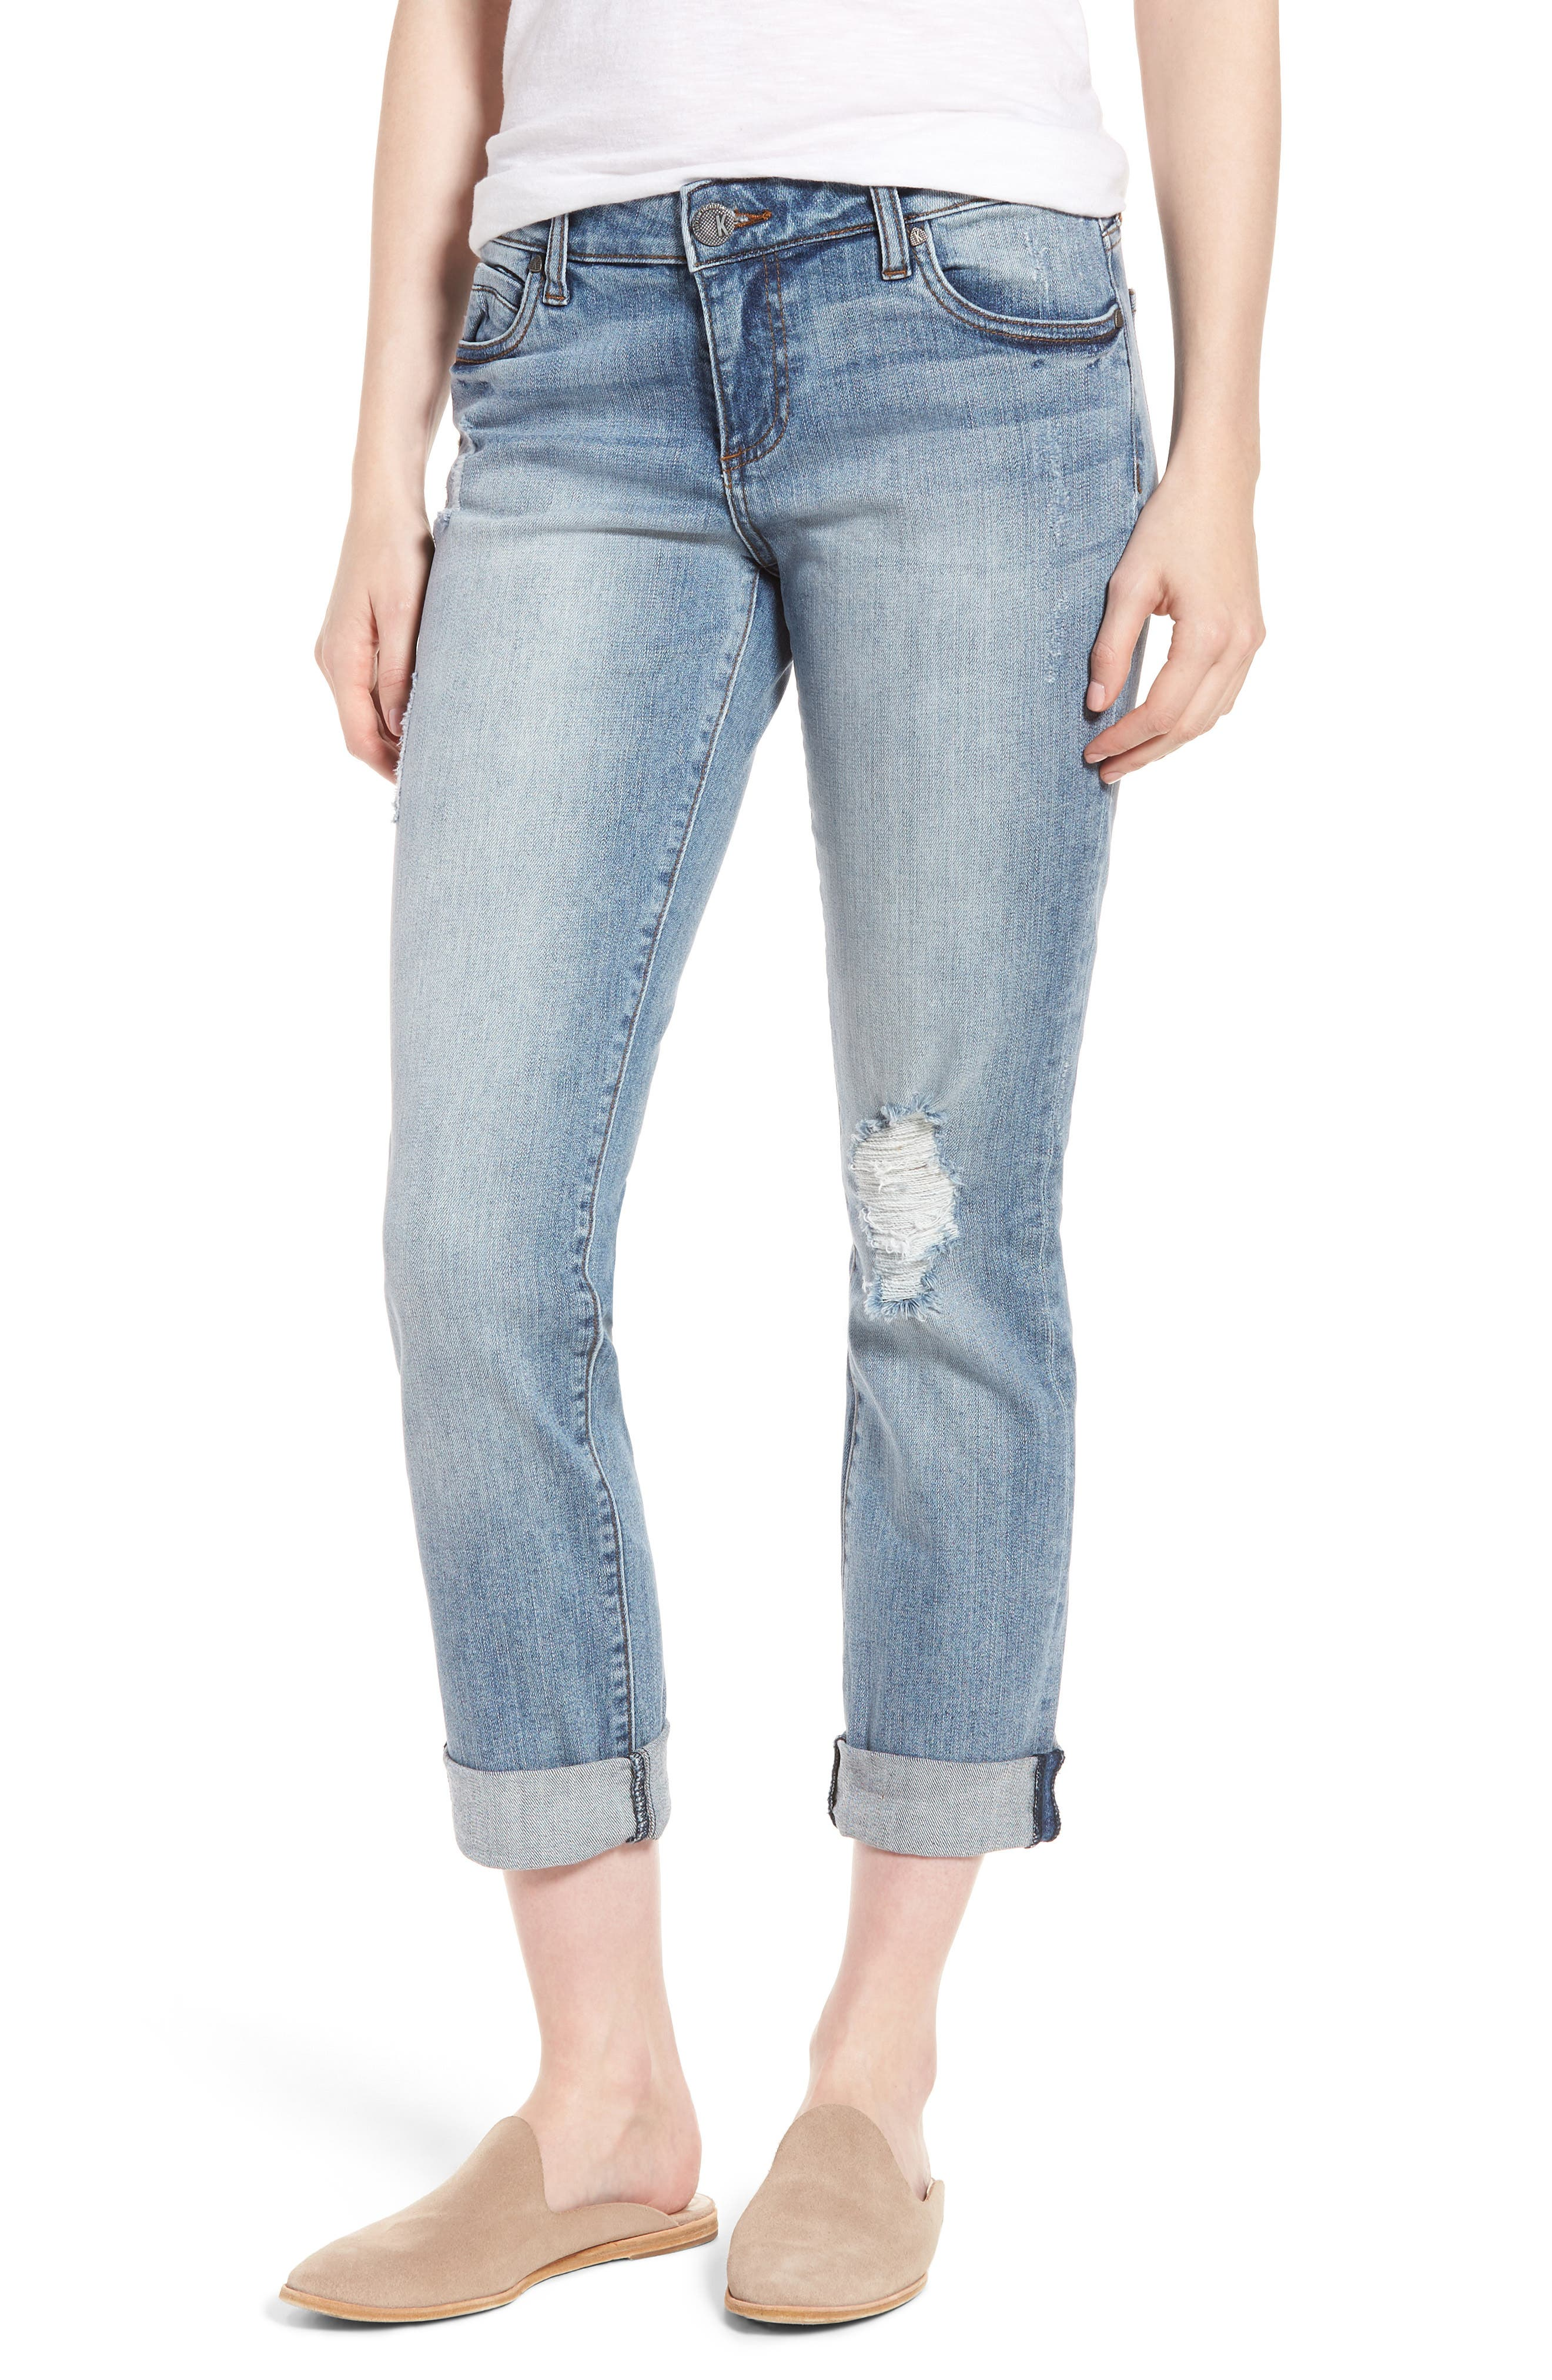 Alternate Image 1 Selected - KUT from the Kloth Catherine Distressed Boyfriend Jeans (Announce)